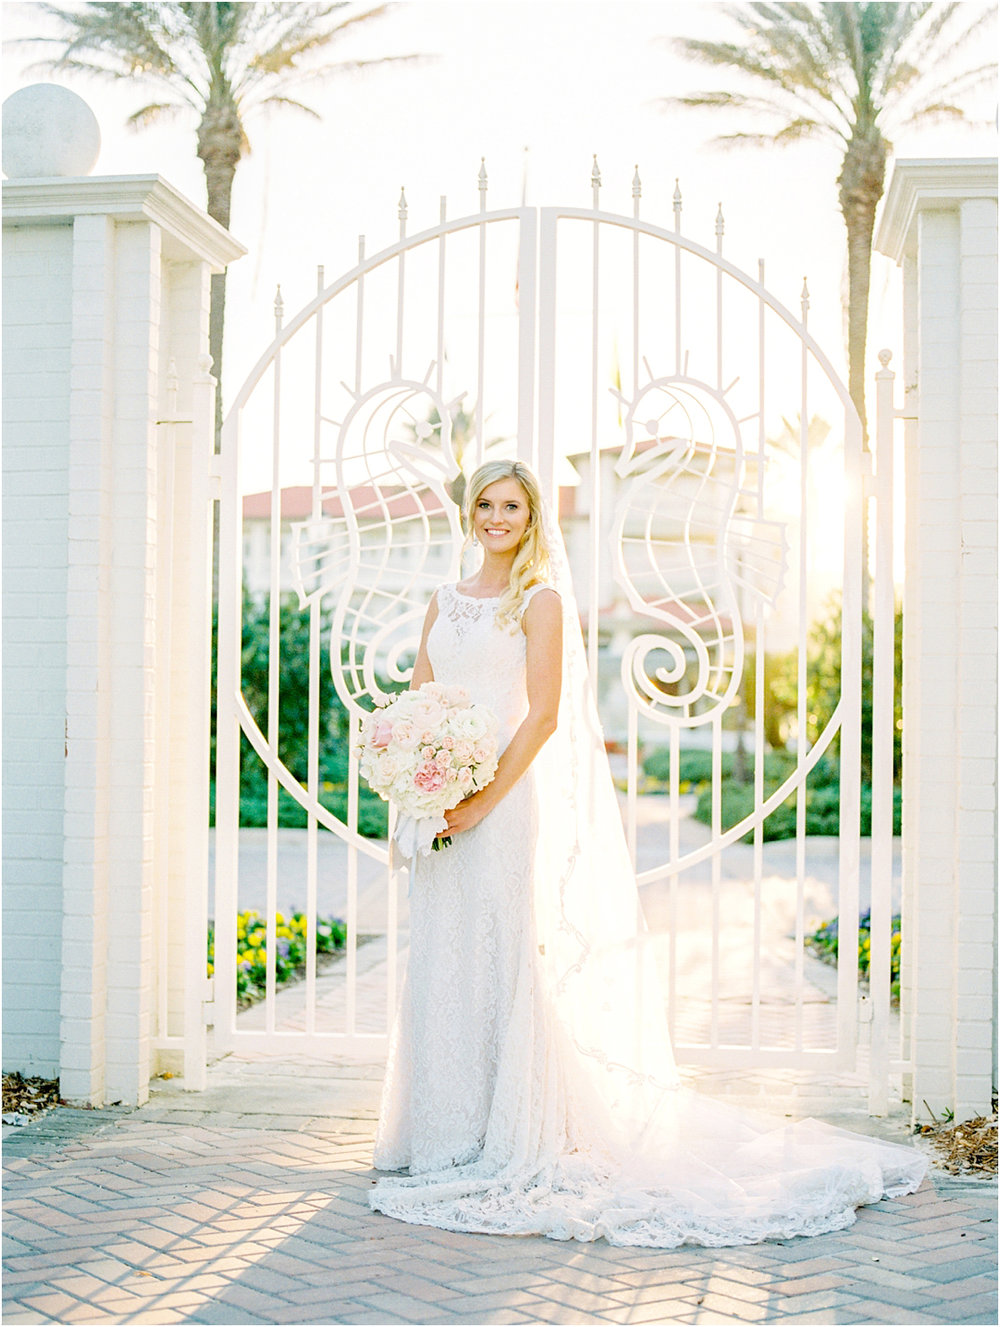 Lisa Silva Photography- Ponte Vedra Beach and Jacksonville, Florida Fine Art Film Wedding Photography- Wedding at the Ponte Vedra Inn and Club_0019.jpg